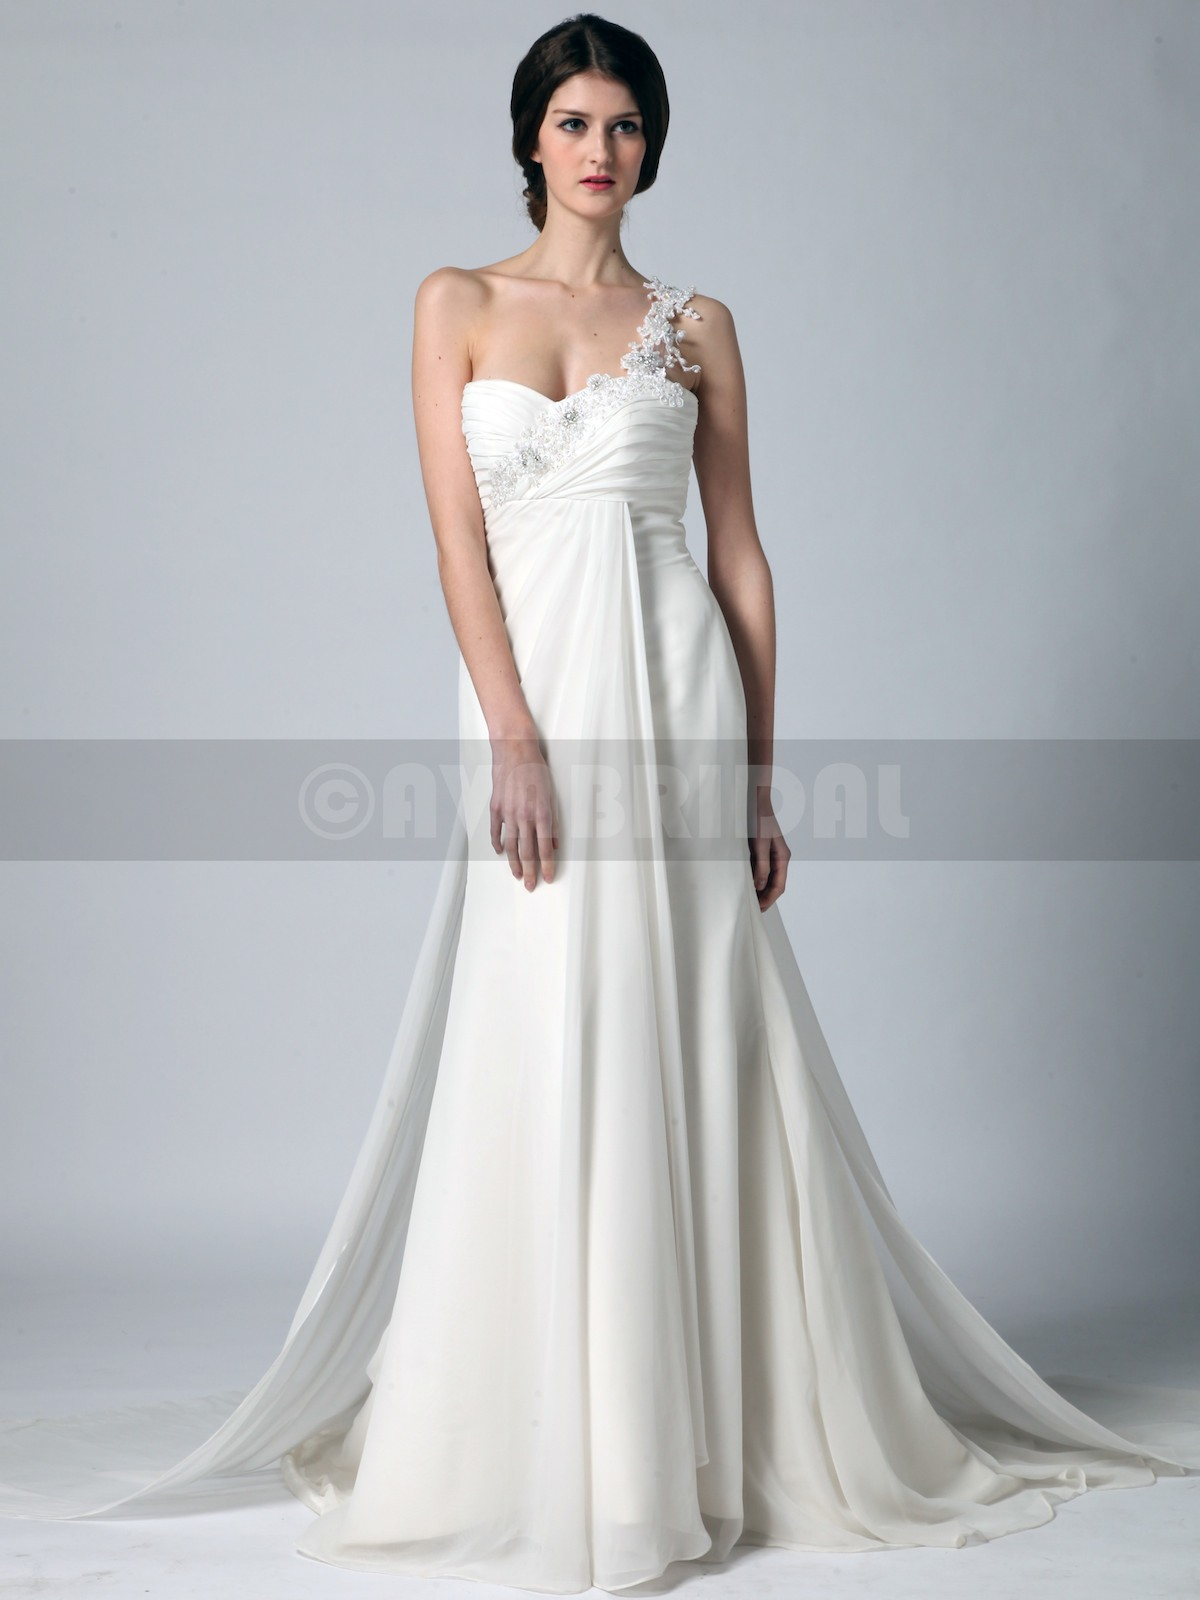 Grecian Goddess Wedding Dress - Lydia | Ava Bridal